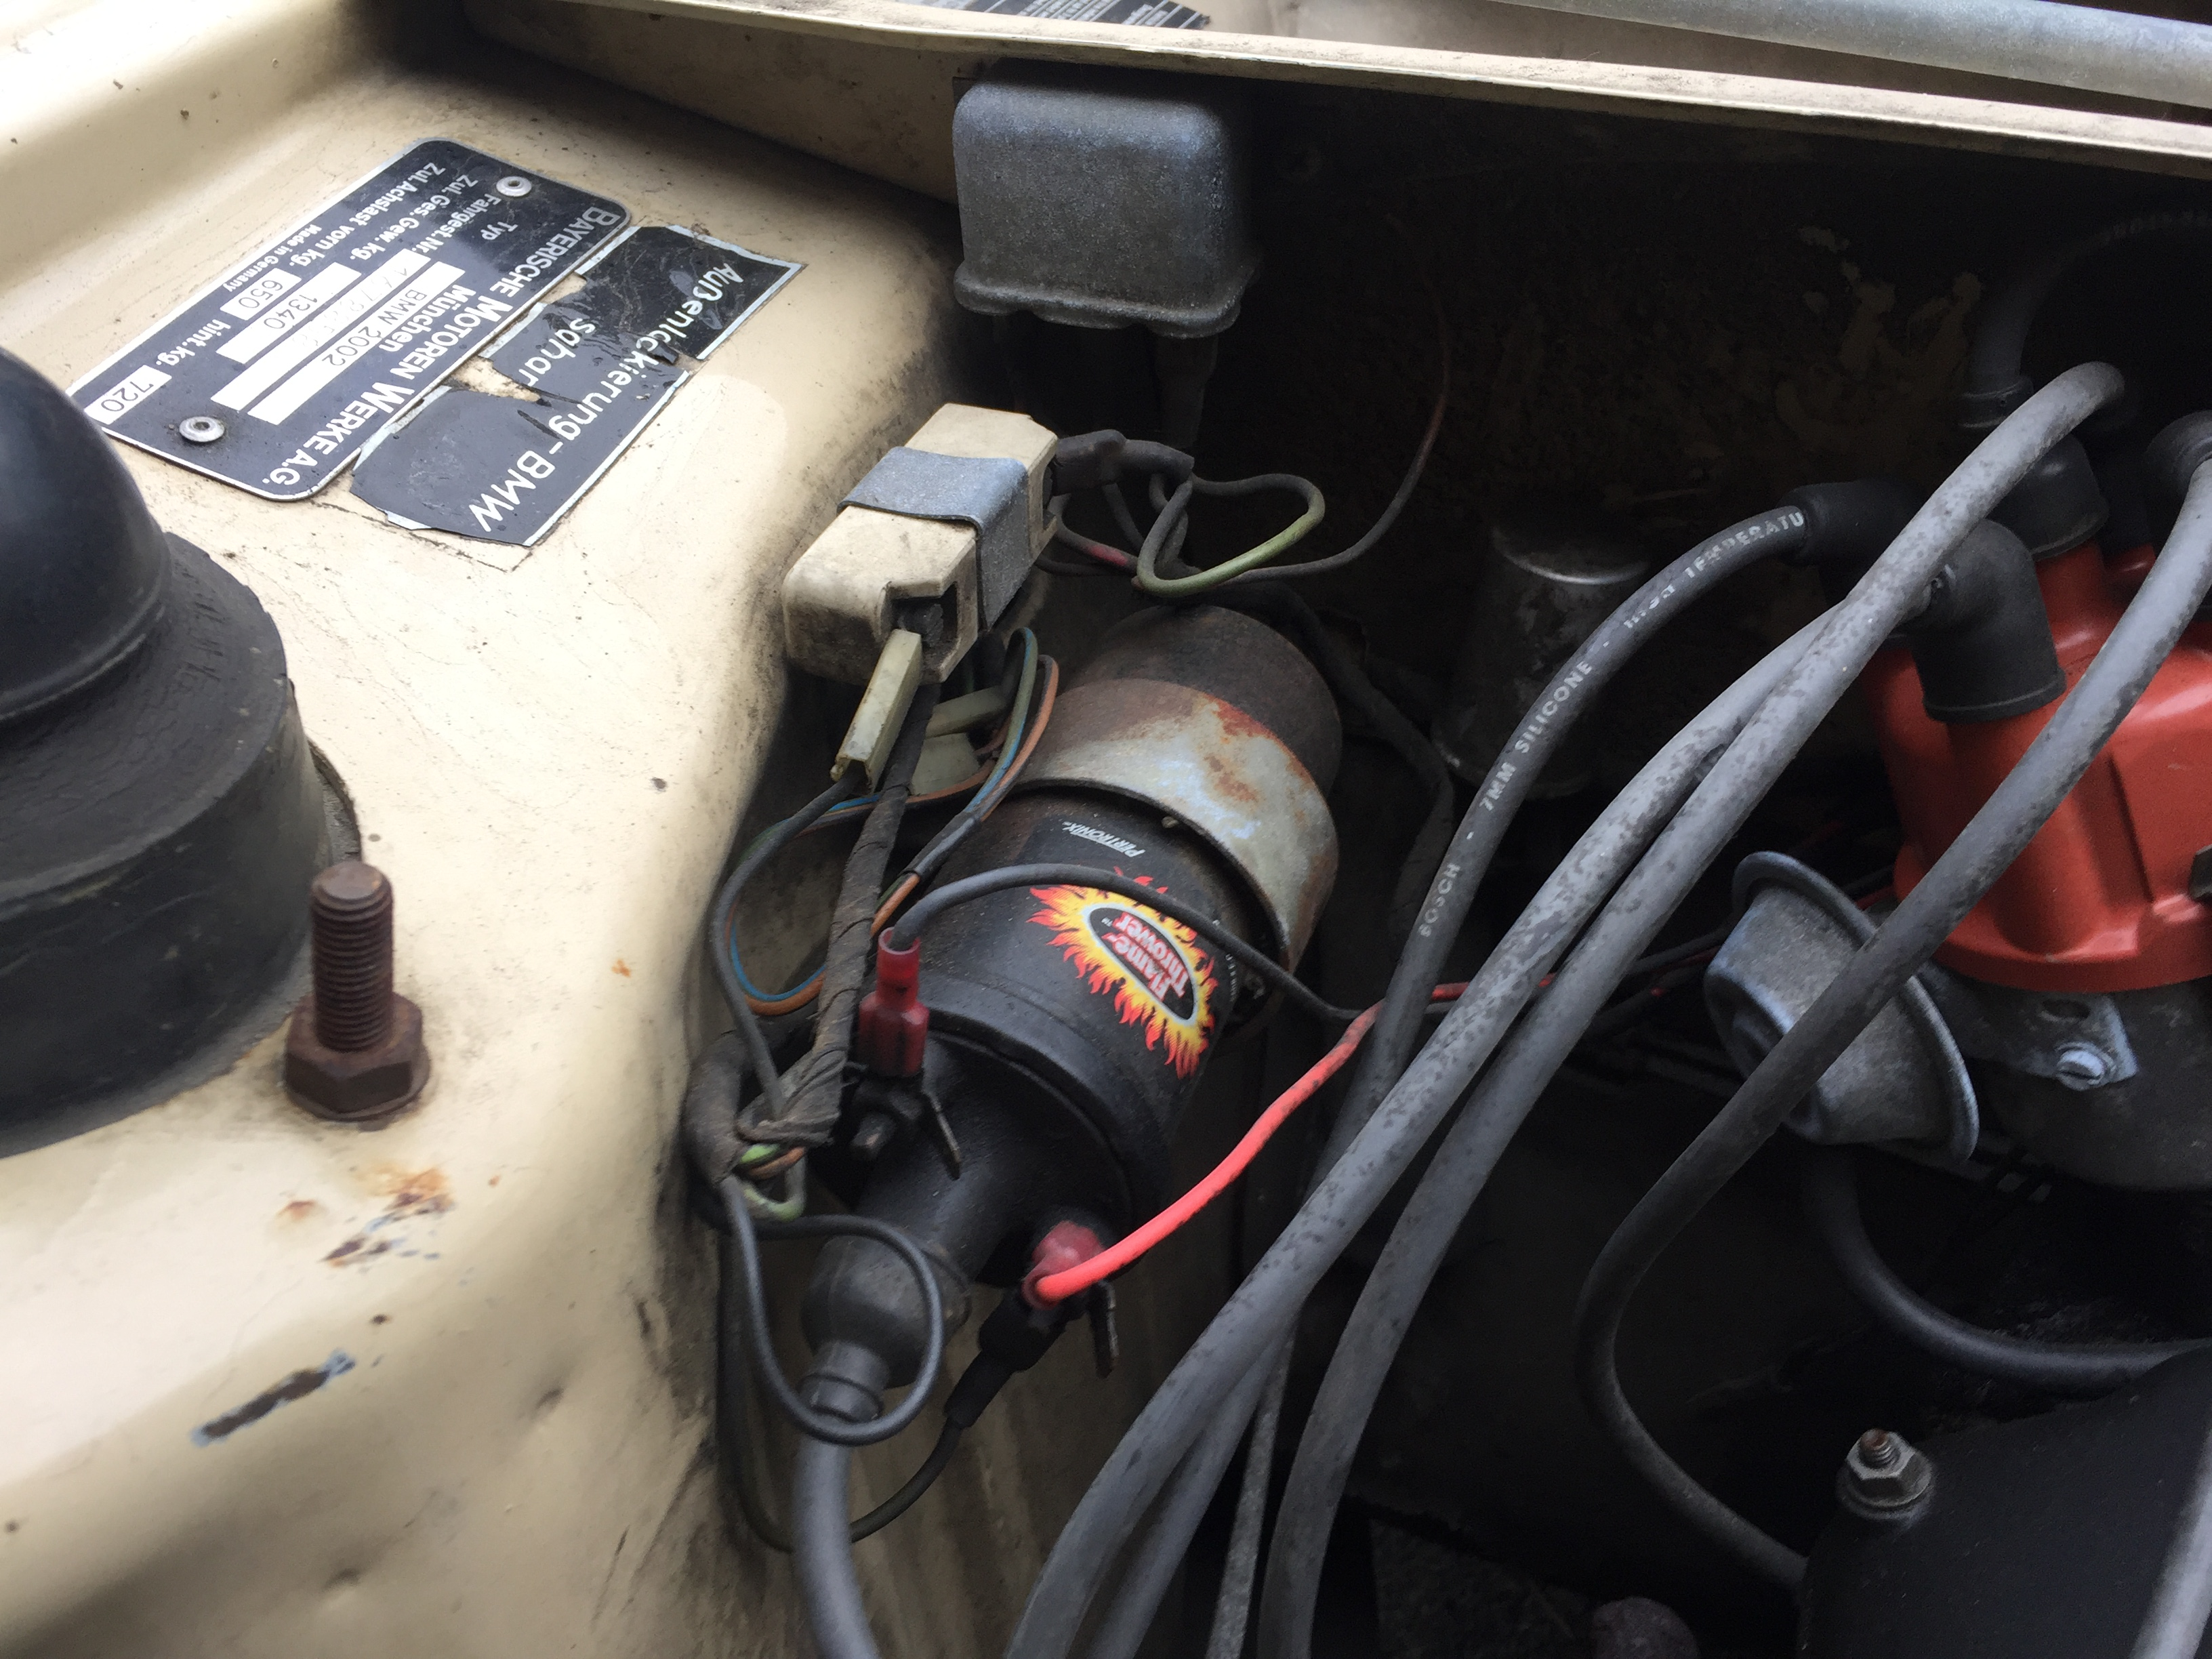 Best Way To Clean Upgrade Wires And Terminals Bmw 2002 General Wiring Is There A Kit I Can Buy That Has Bunch Of Different Colors If Go The Cleaning Route What Products Do You Recommend Any Other Tips Or Insight